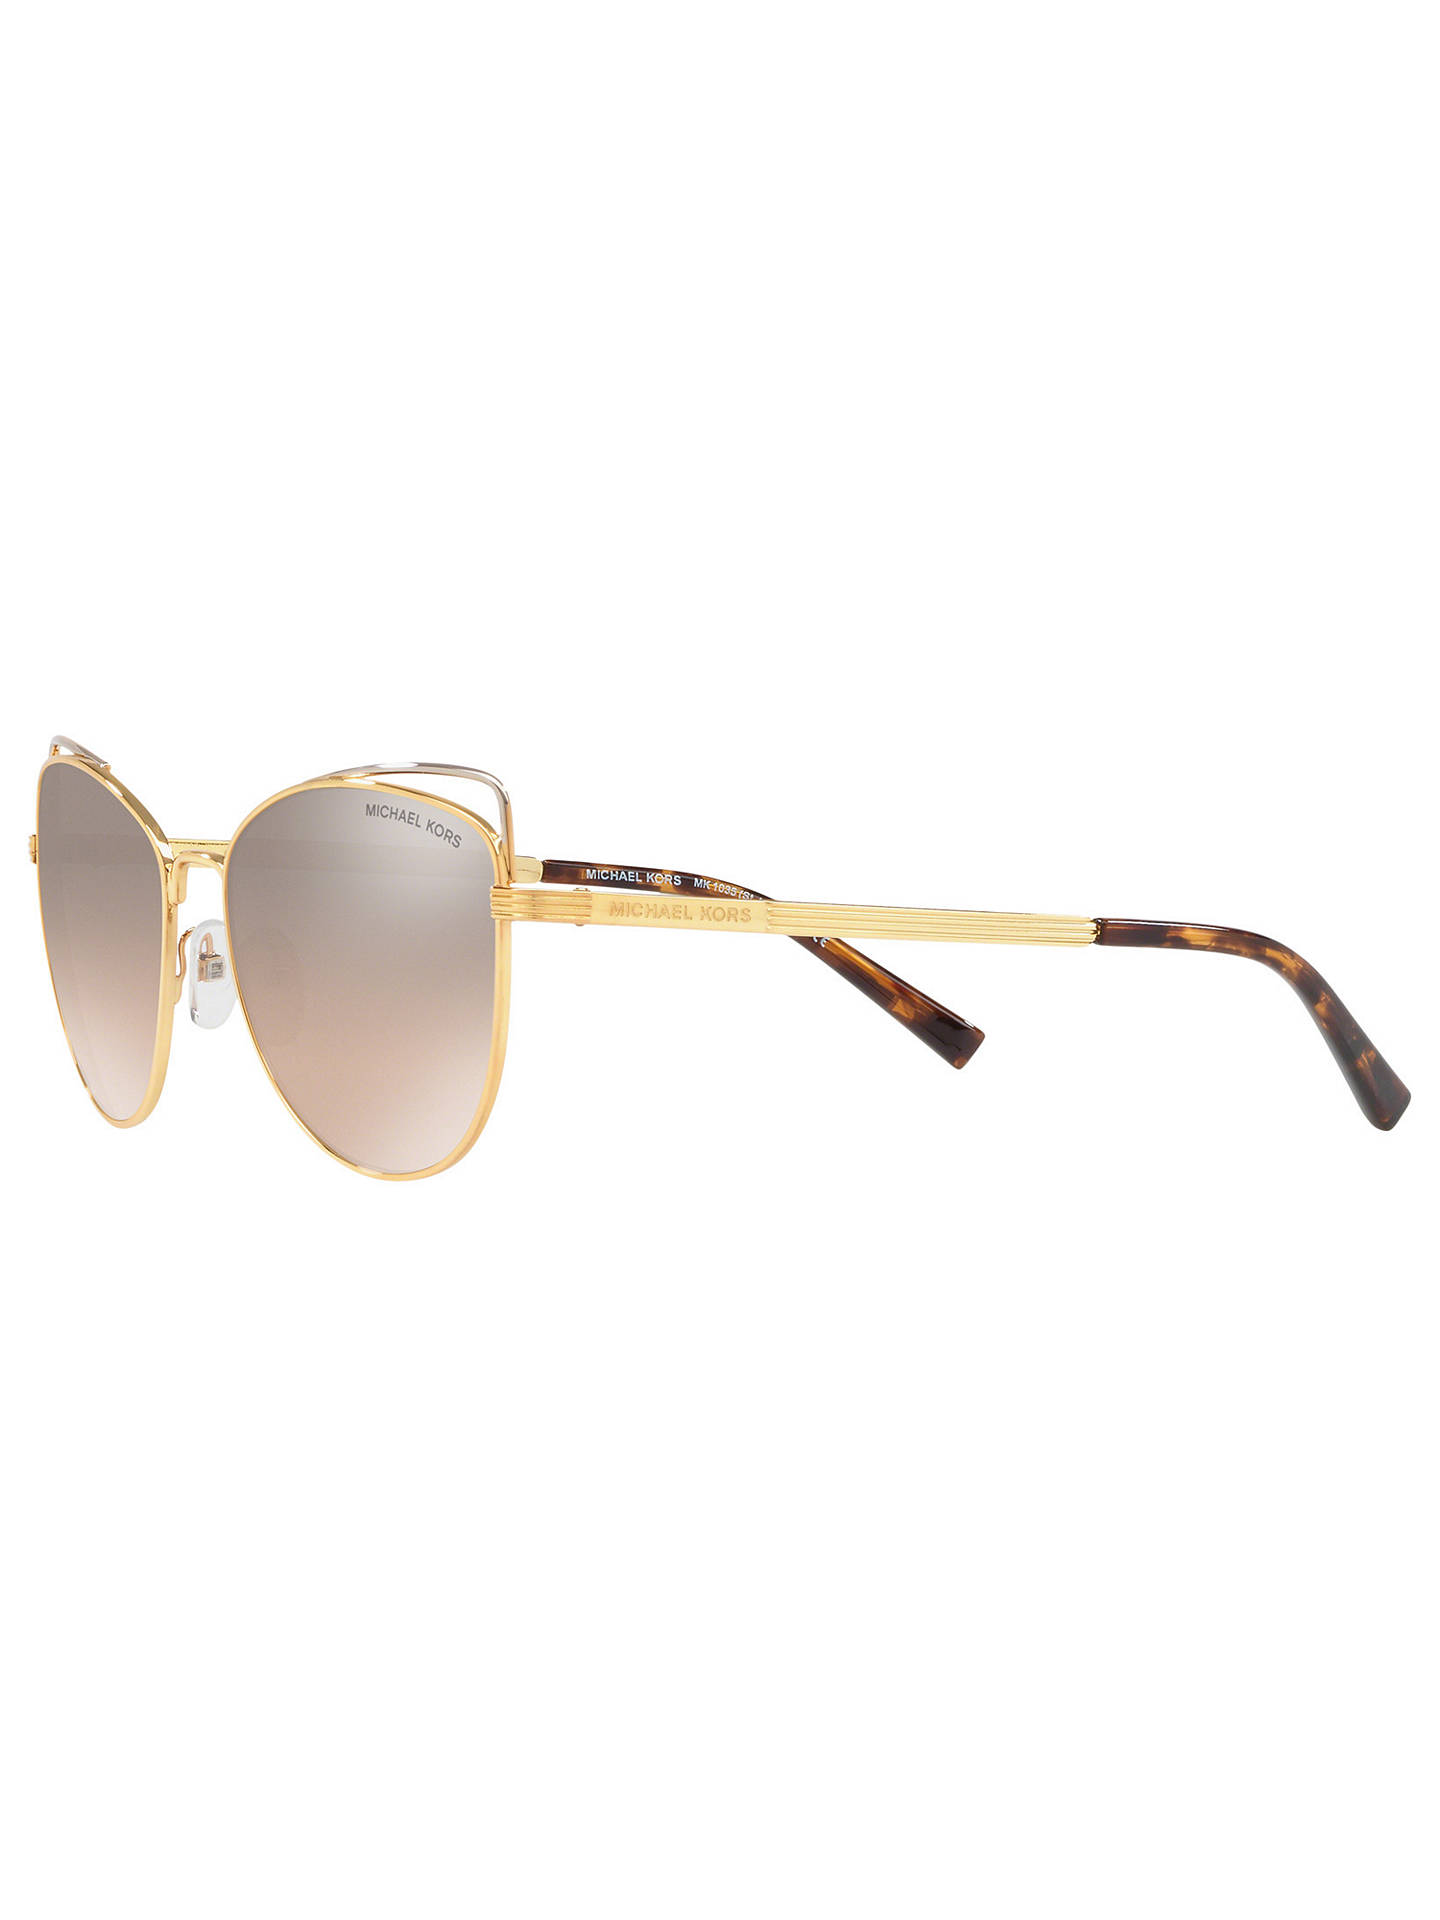 34dce0262b3 Michael Kors MK1035 Women s St. Lucia Cat s Eye Sunglasses at John ...